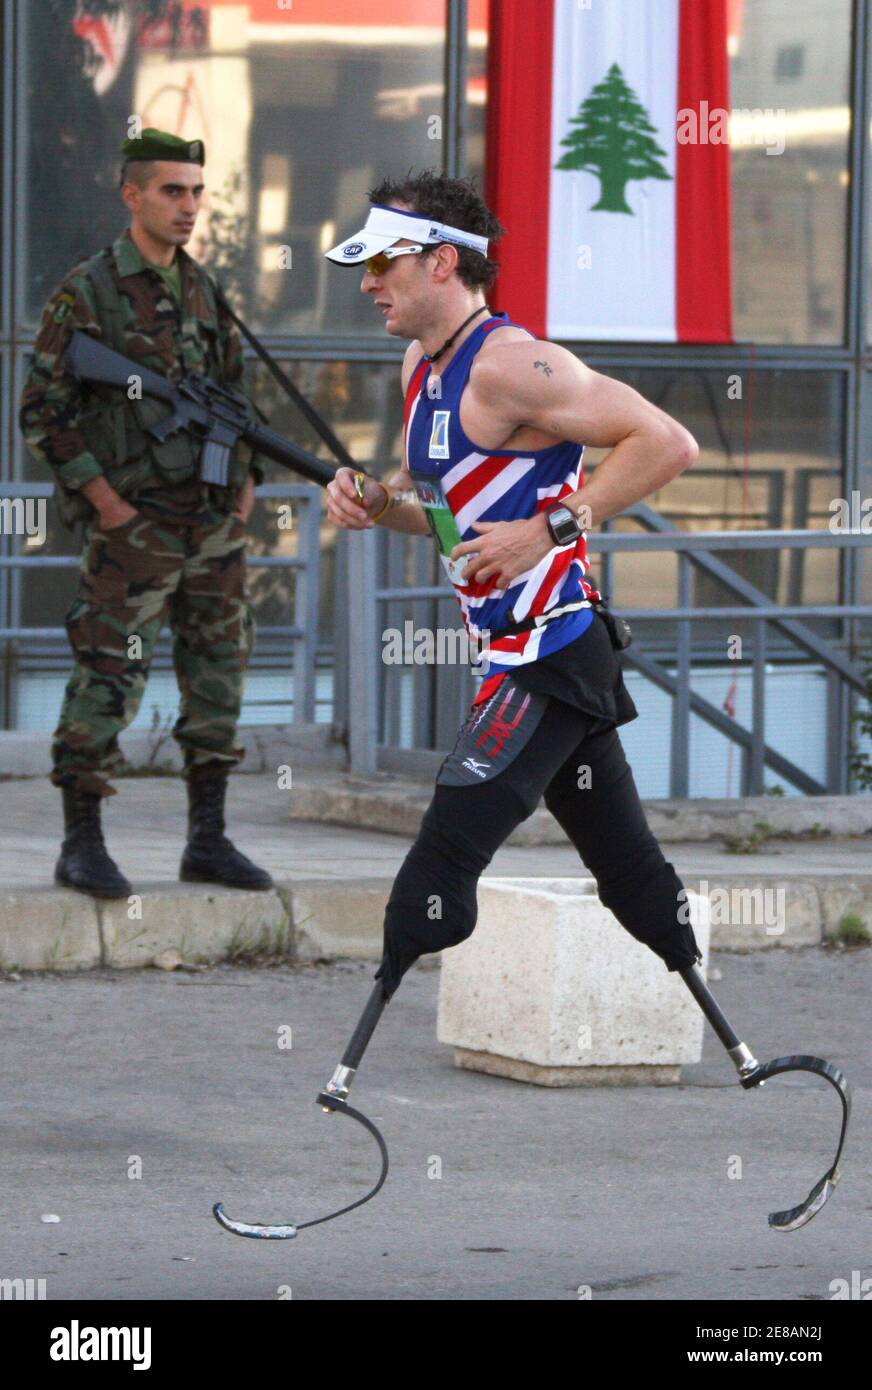 Richard Whitehead, a British disability activist who was born without legs, competes as he runs past a Lebanese soldier during the annual Beirut Marathon in Beirut, November 30, 2008. Thousands of people took part in the run which started in the Lebanese capital.     REUTERS/ Mohamed Azakir  (LEBANON) Foto de stock